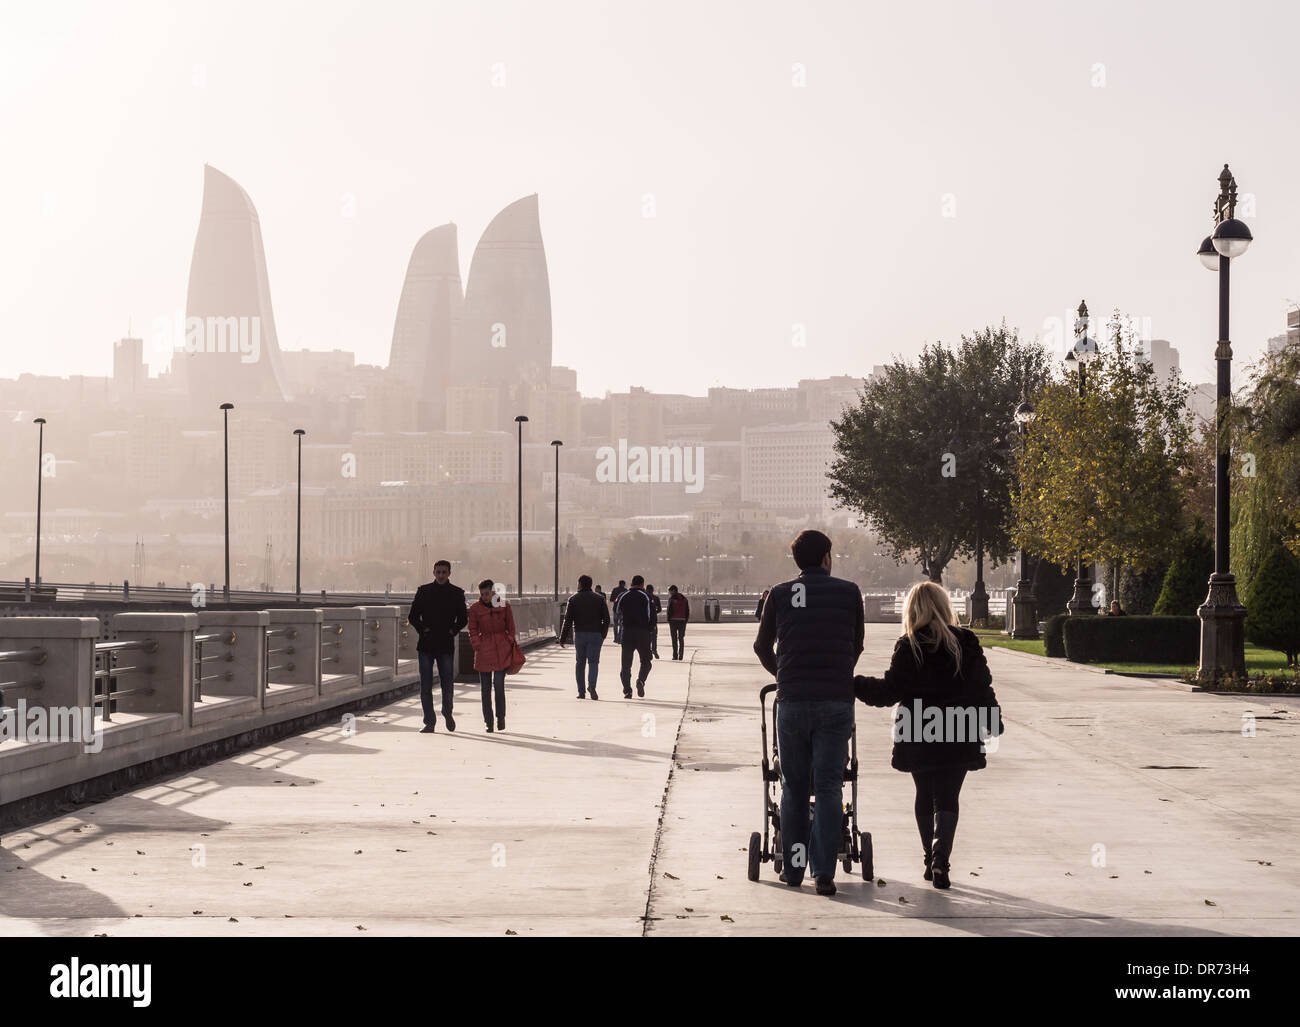 Baku Boulevard at sunset. The boulevard was established in 1909 and today is a popular tourist attraction. Stock Photo